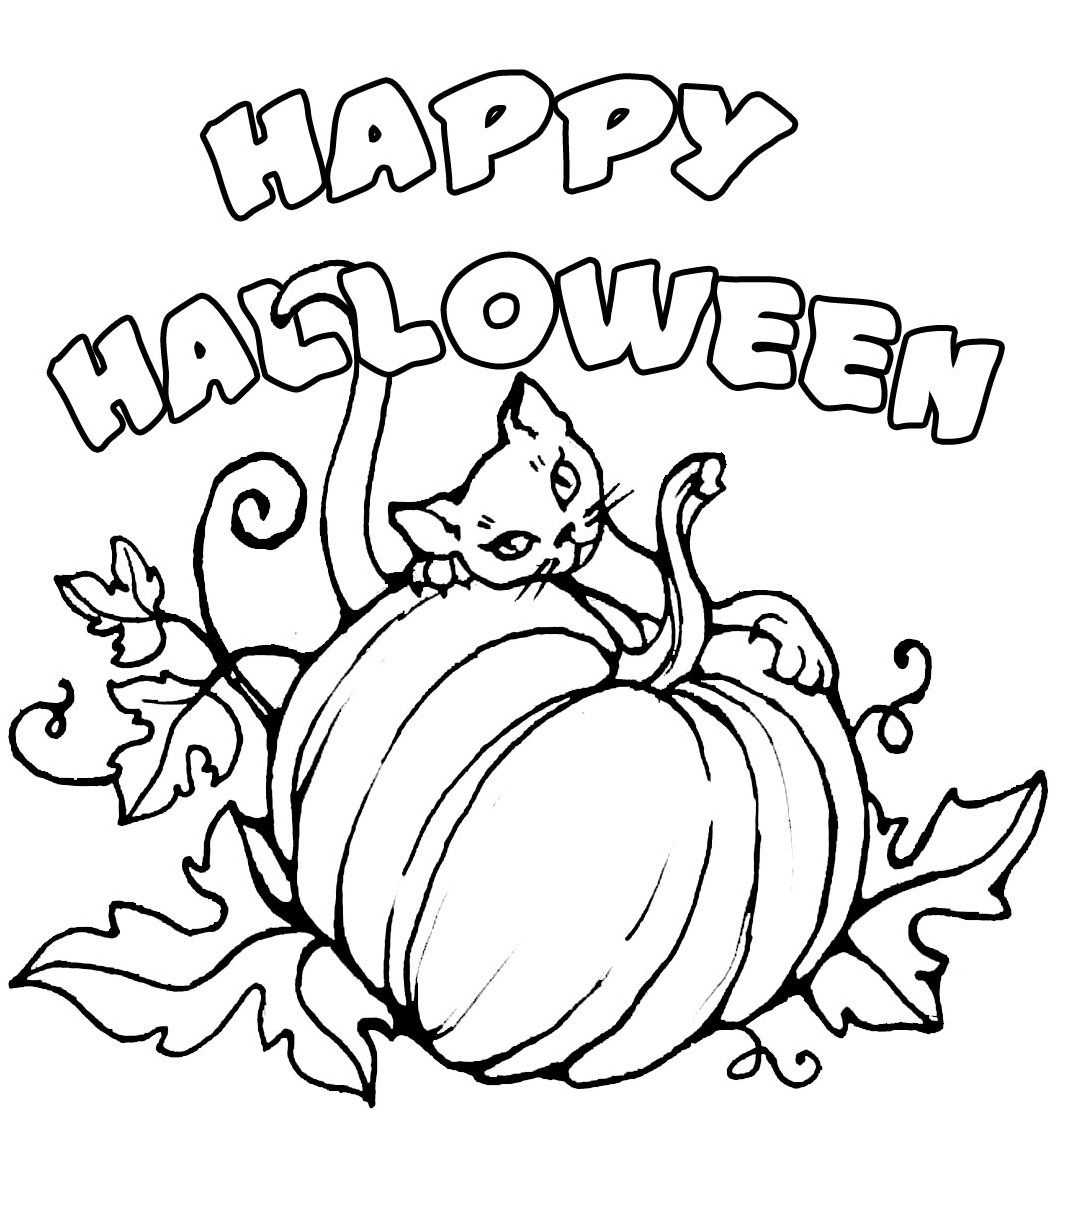 Here Are Two Happy Halloween Signs For You To Print And Colour In